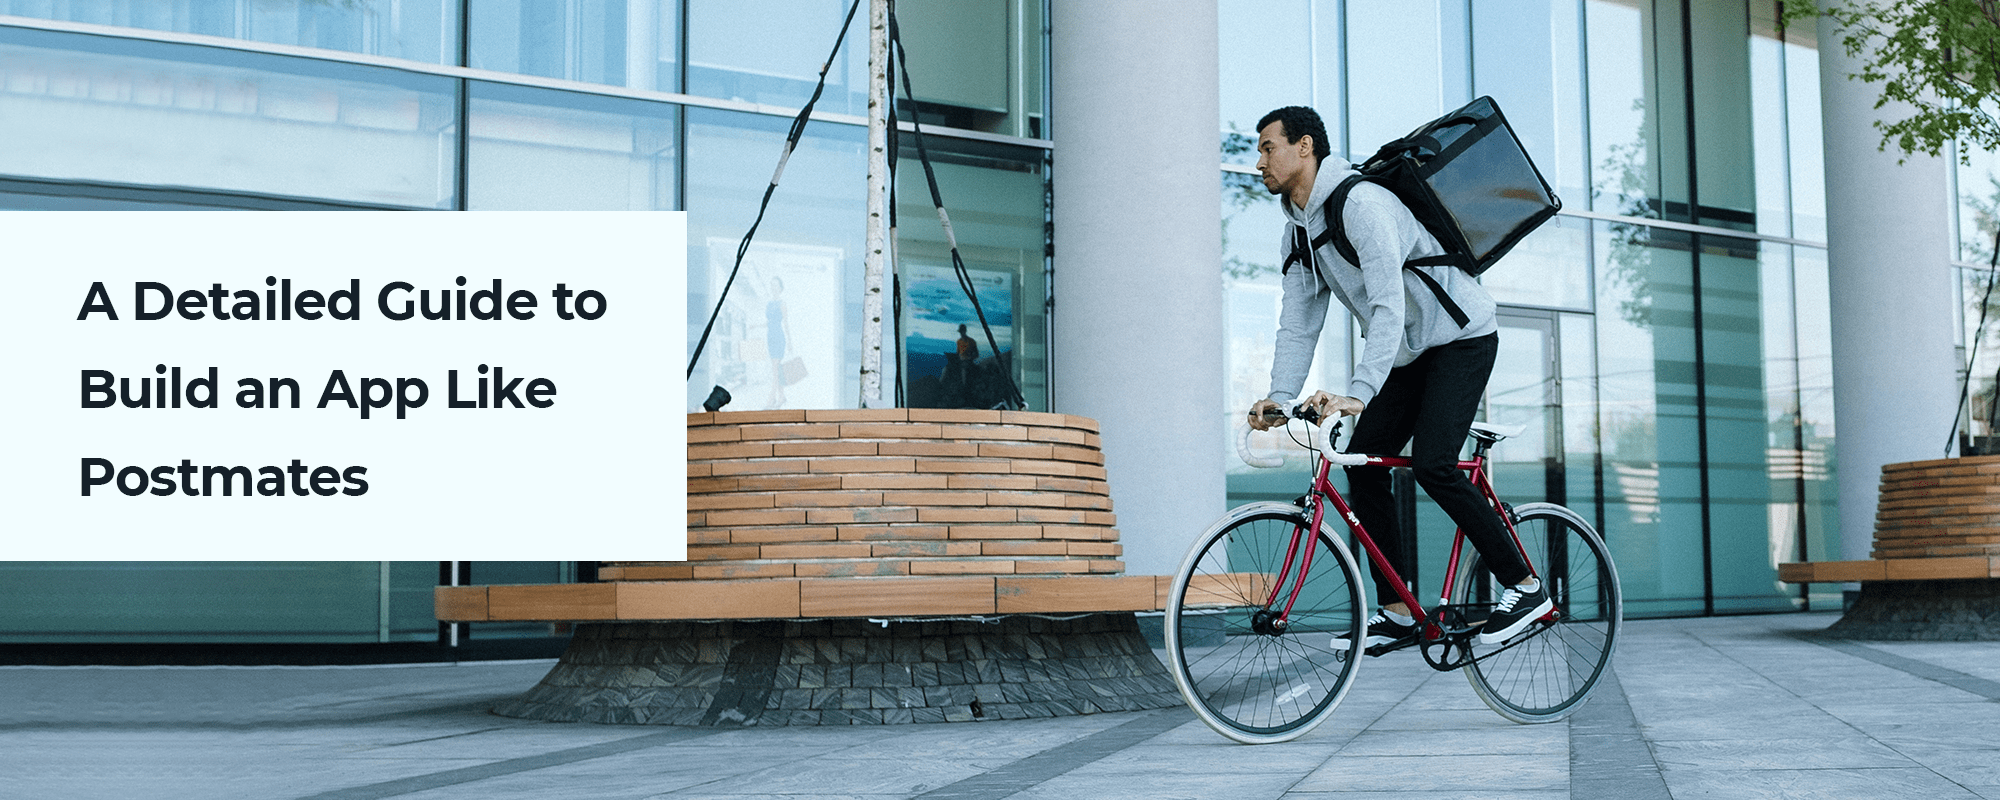 How to Build a Food Delivery App Like Postmates?